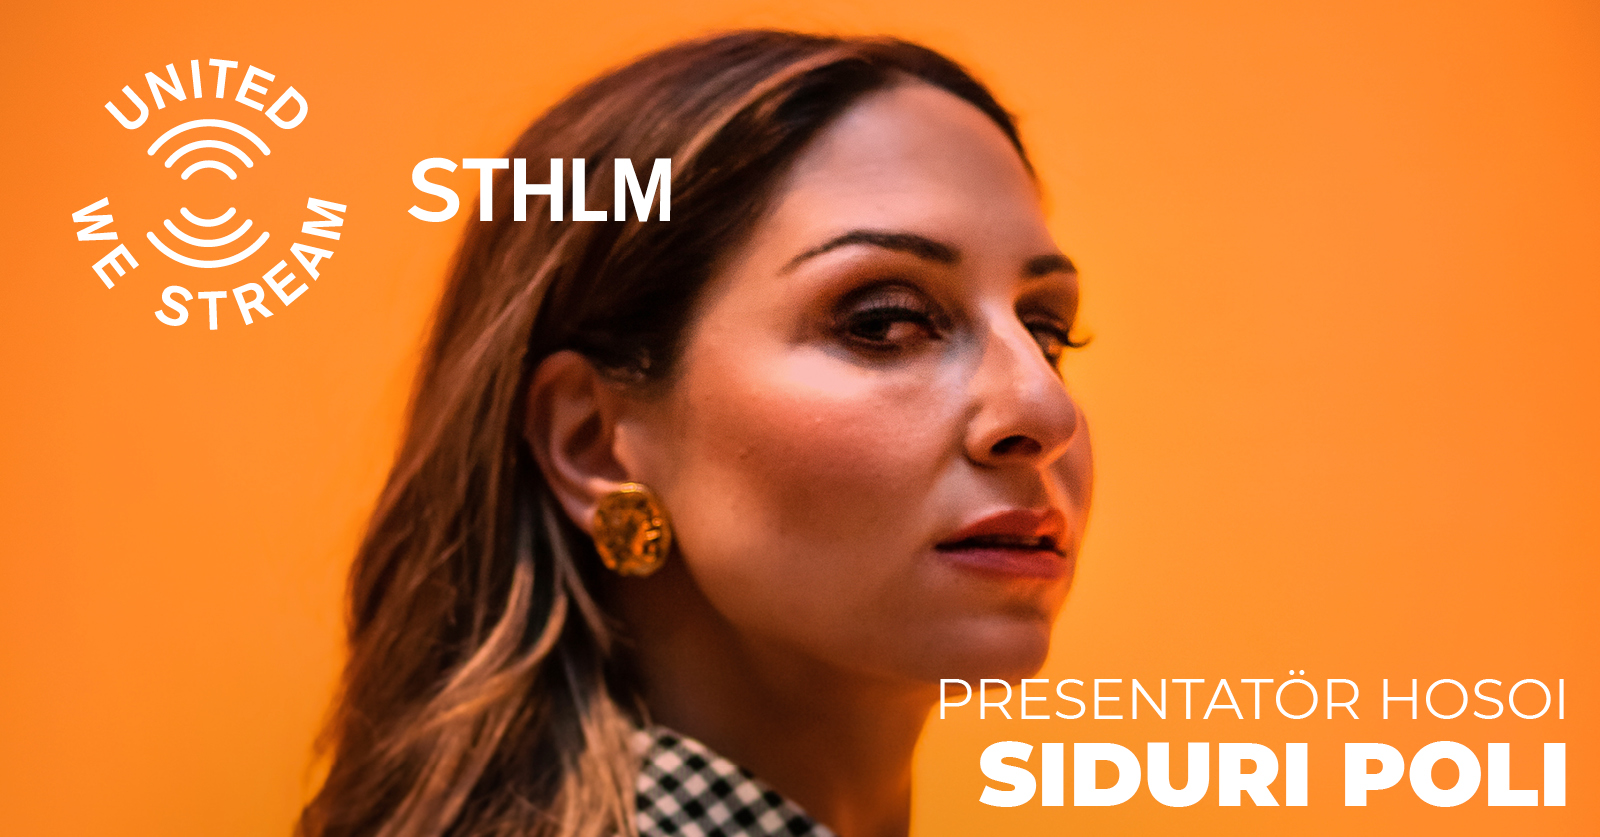 Siduri Poli United We Stream Sthlm